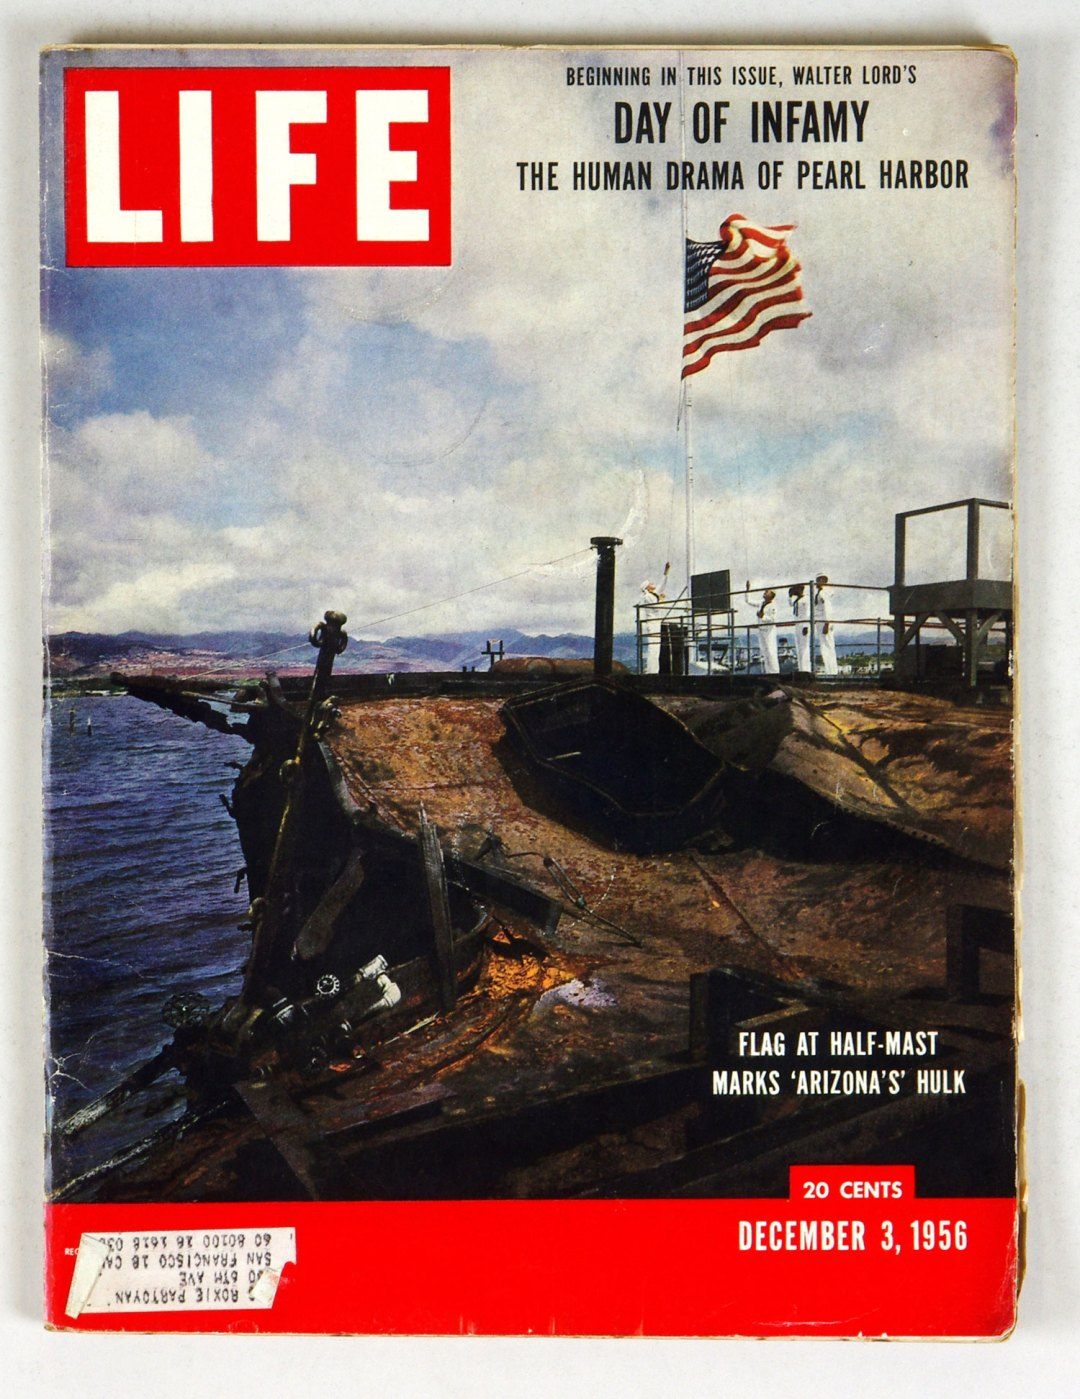 LIFE Magazine 1956 December 3 Day of Infamy The Human Drama of Pearl Harbor